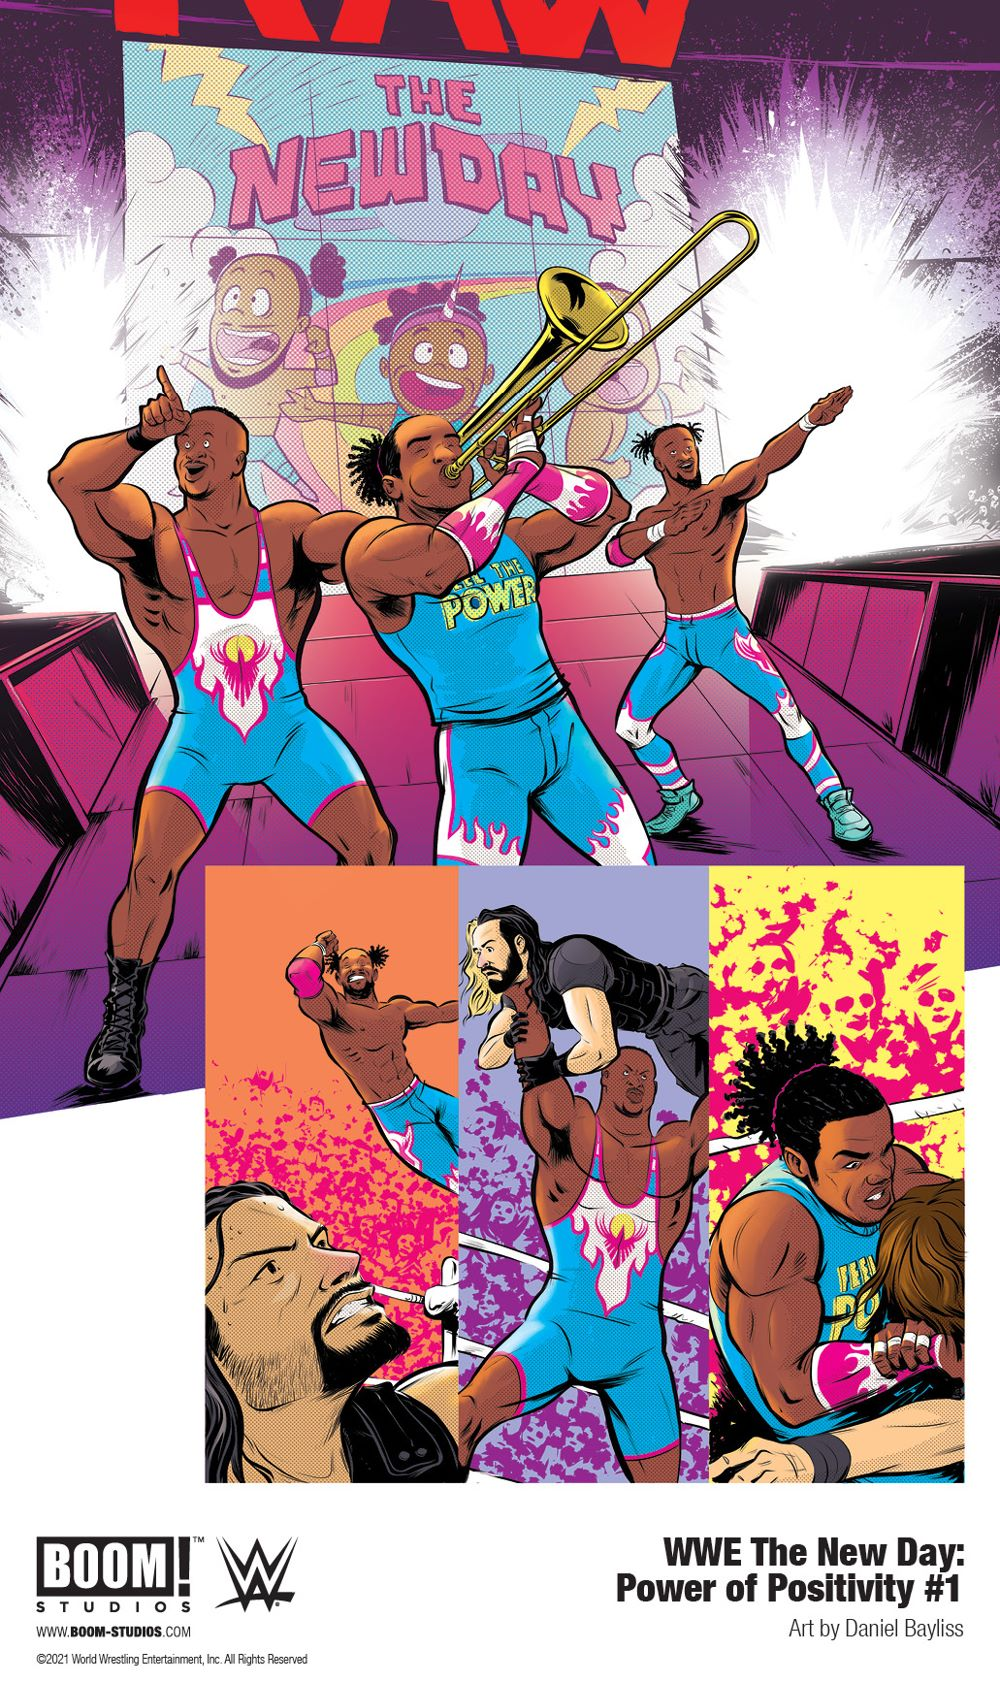 WWE_NewDay_PowerPositivity_001_InteriorArt_001_PROMO Pancakes persuade in WWE THE NEW DAY: POWER OF POSITIVITY